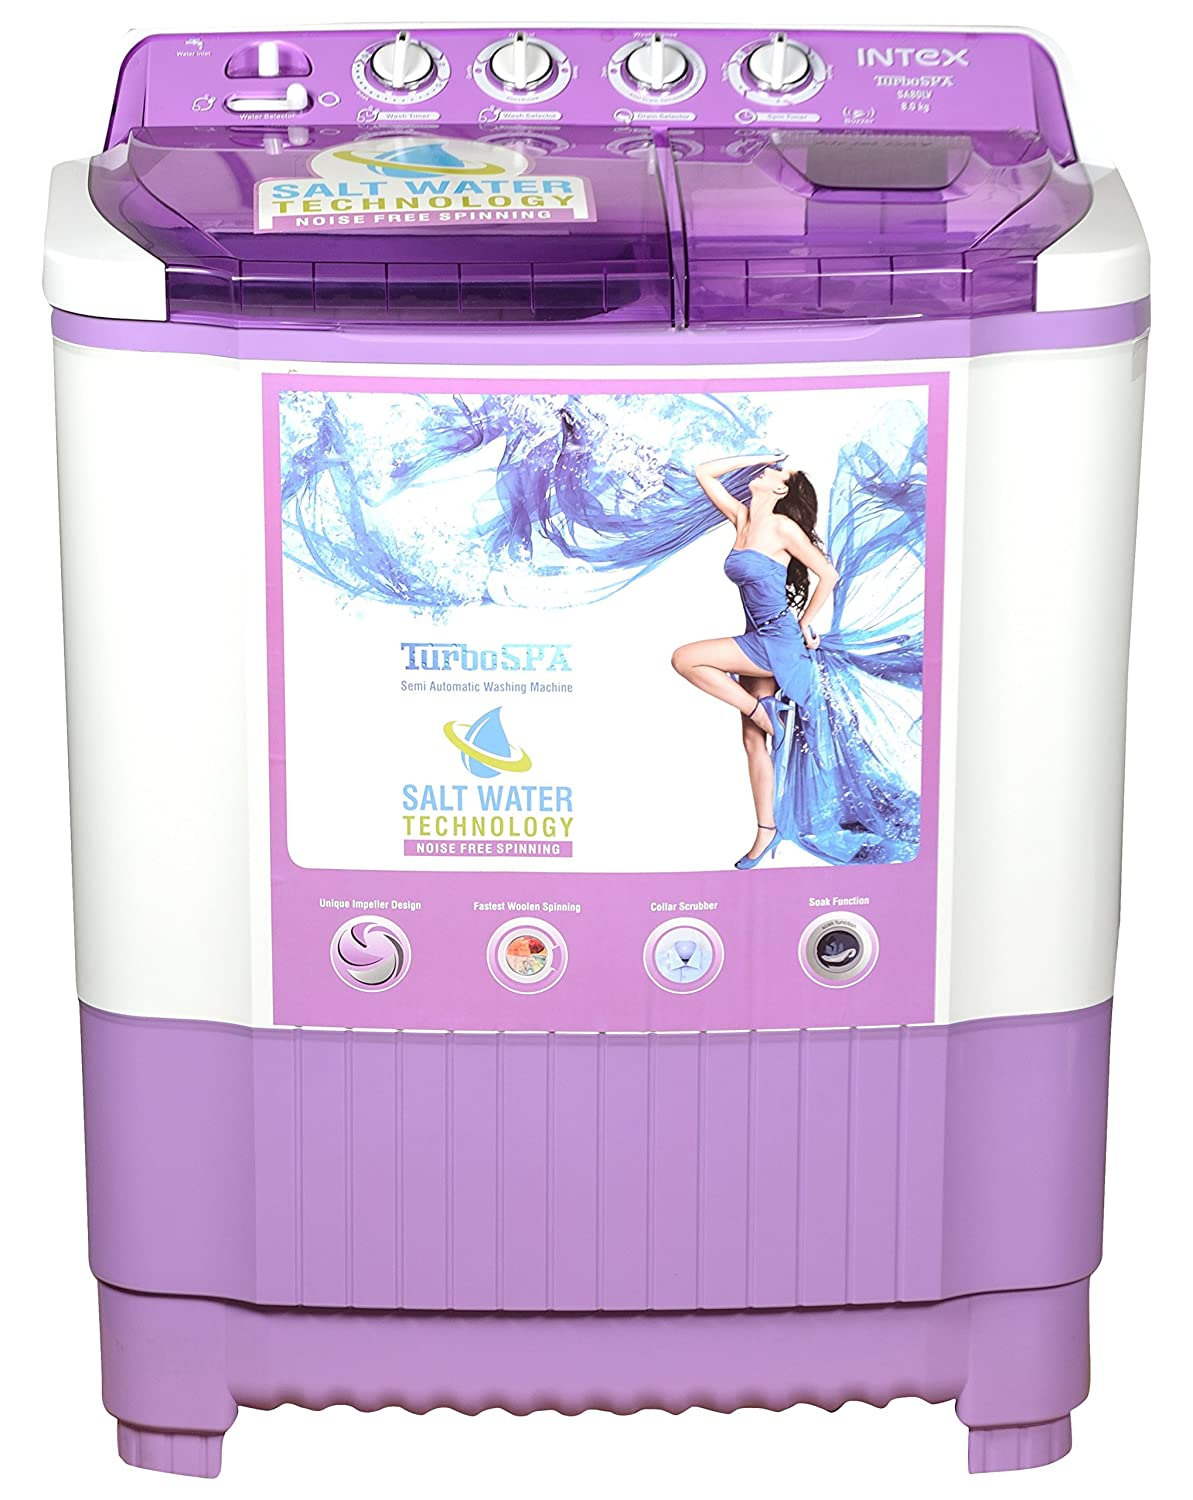 Intex WMSA80LV Semi-automatic Top-loading Washing Machine (8 Kg, White and Lavender) By Amazon @ Rs.8,560